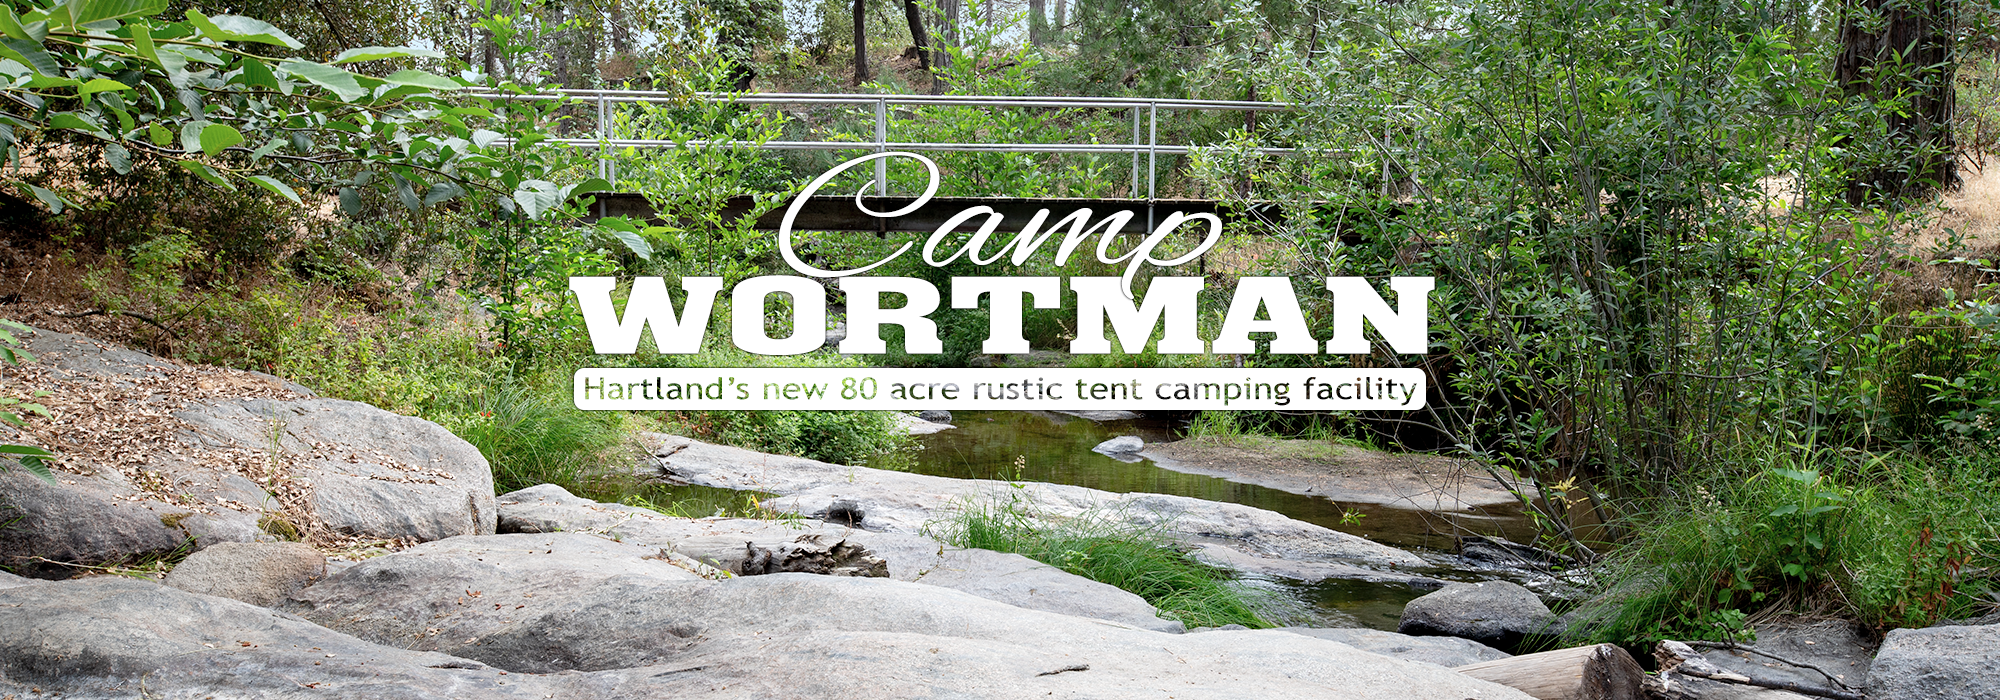 Camp Wortman